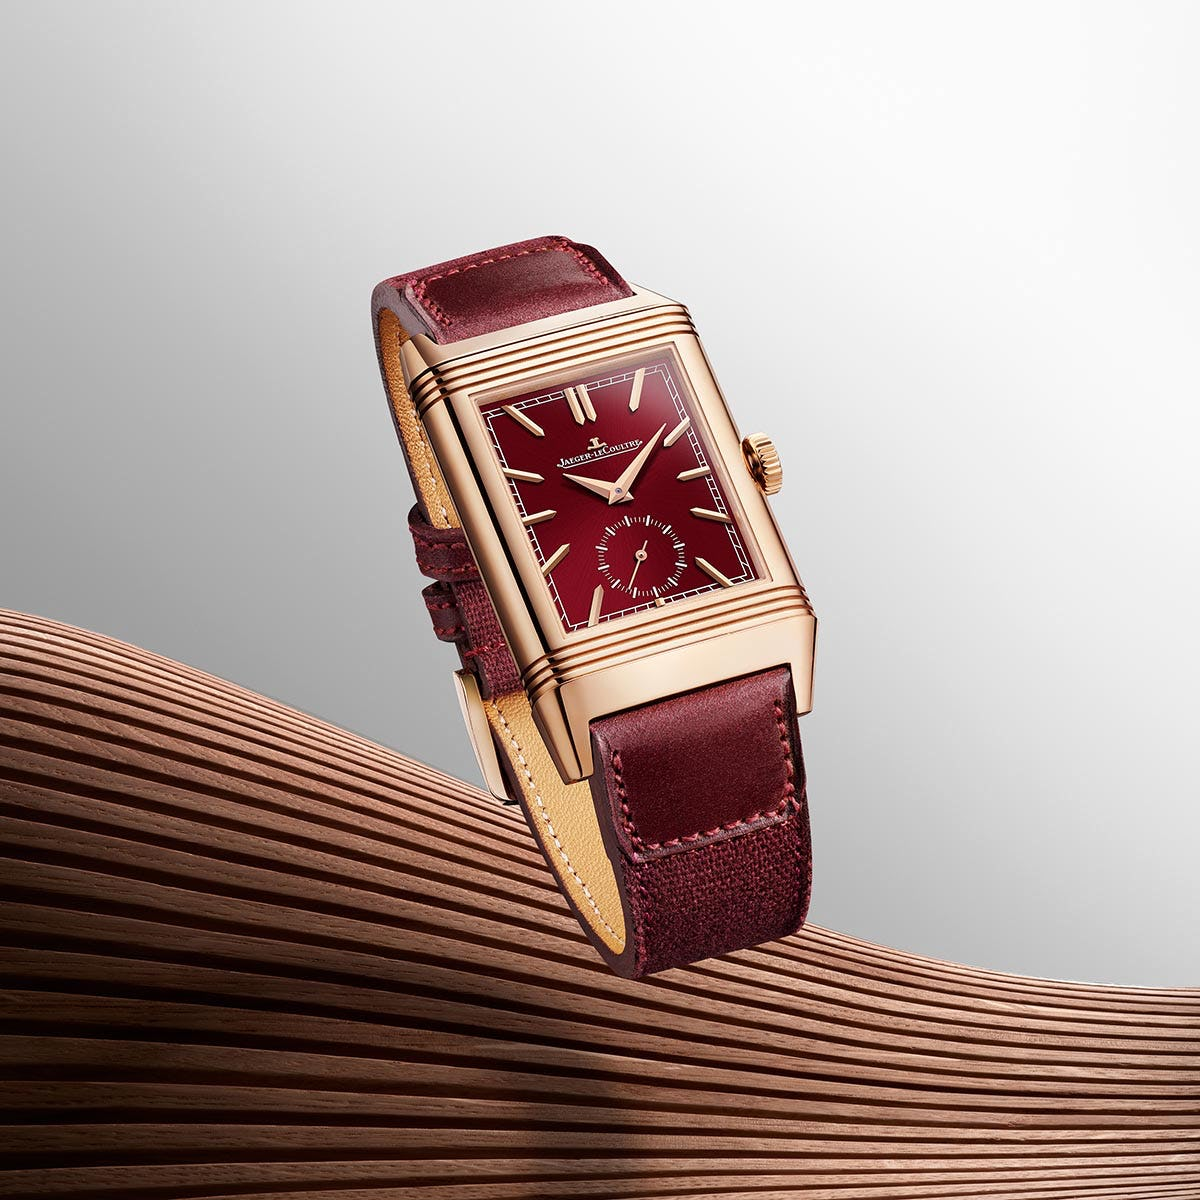 Jaeger-LeCoultre Reverso-red dial